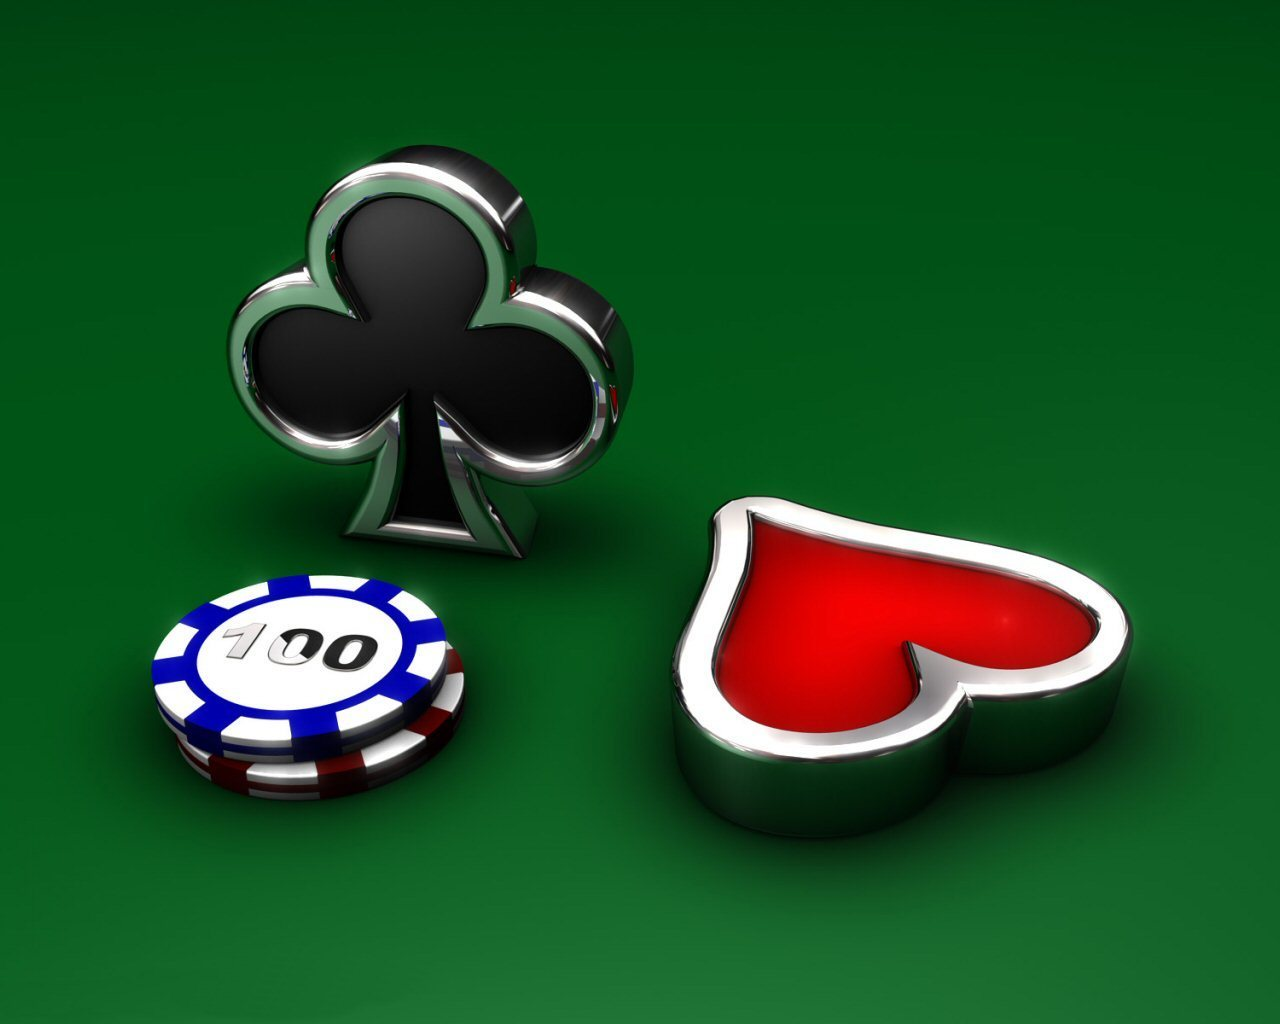 Ladbrokes online casino review